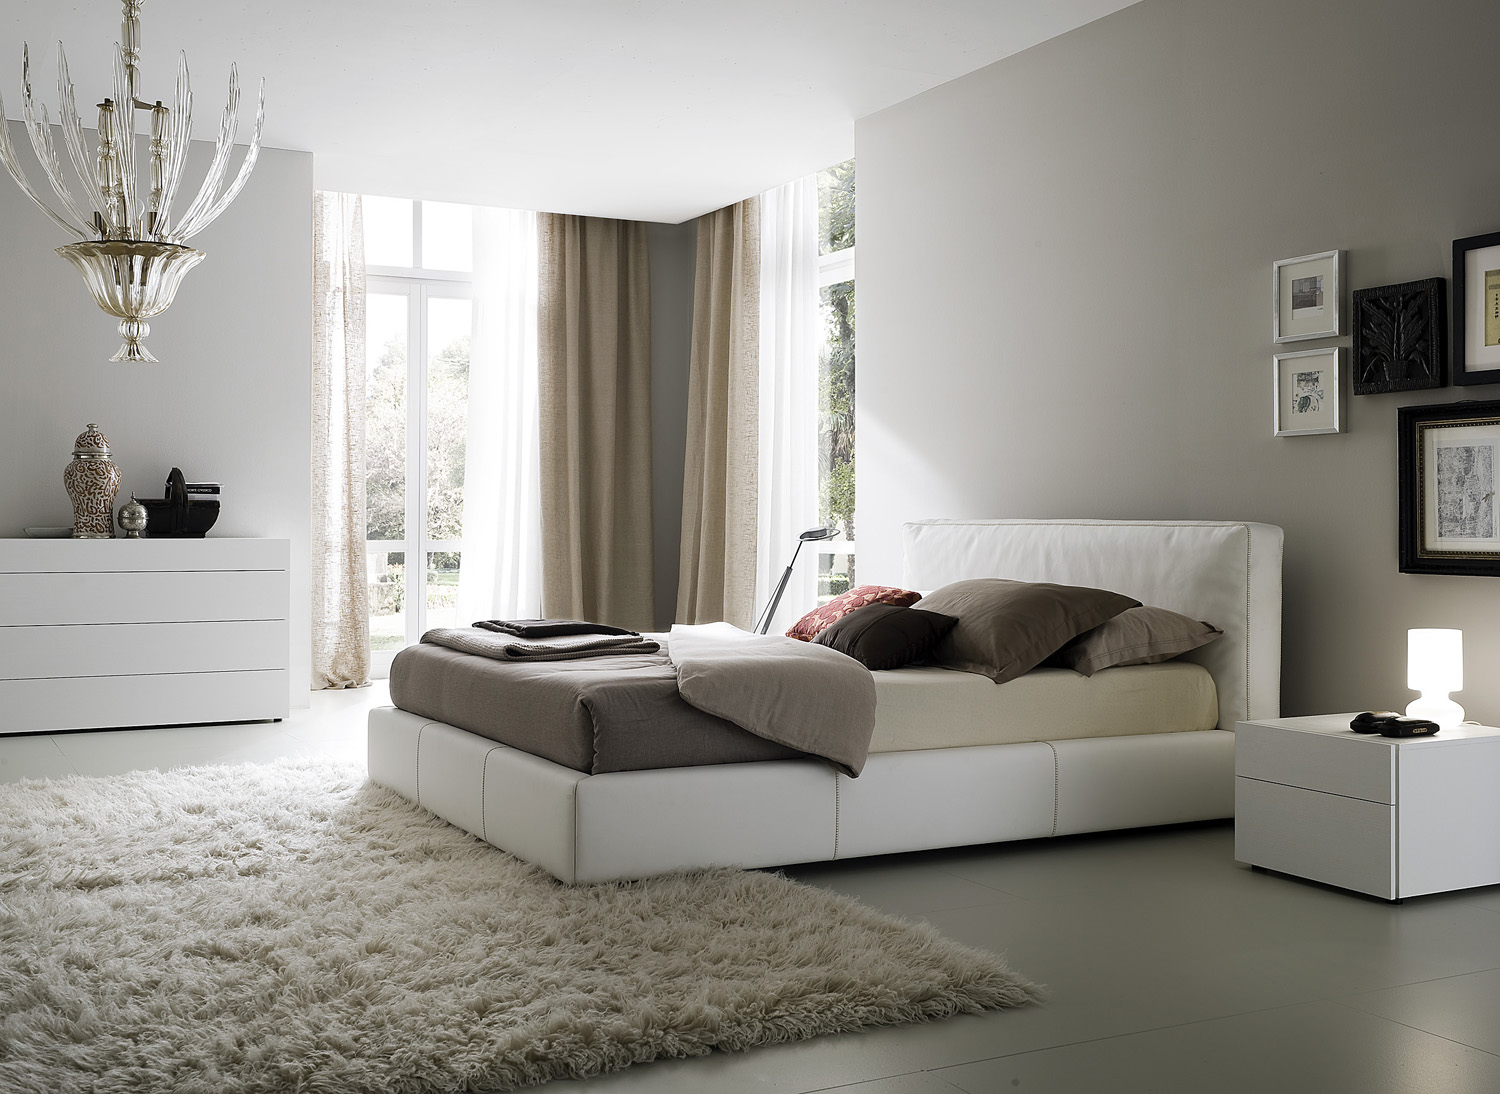 Bedroom decorating ideas from evinco for Bedroom interior pictures